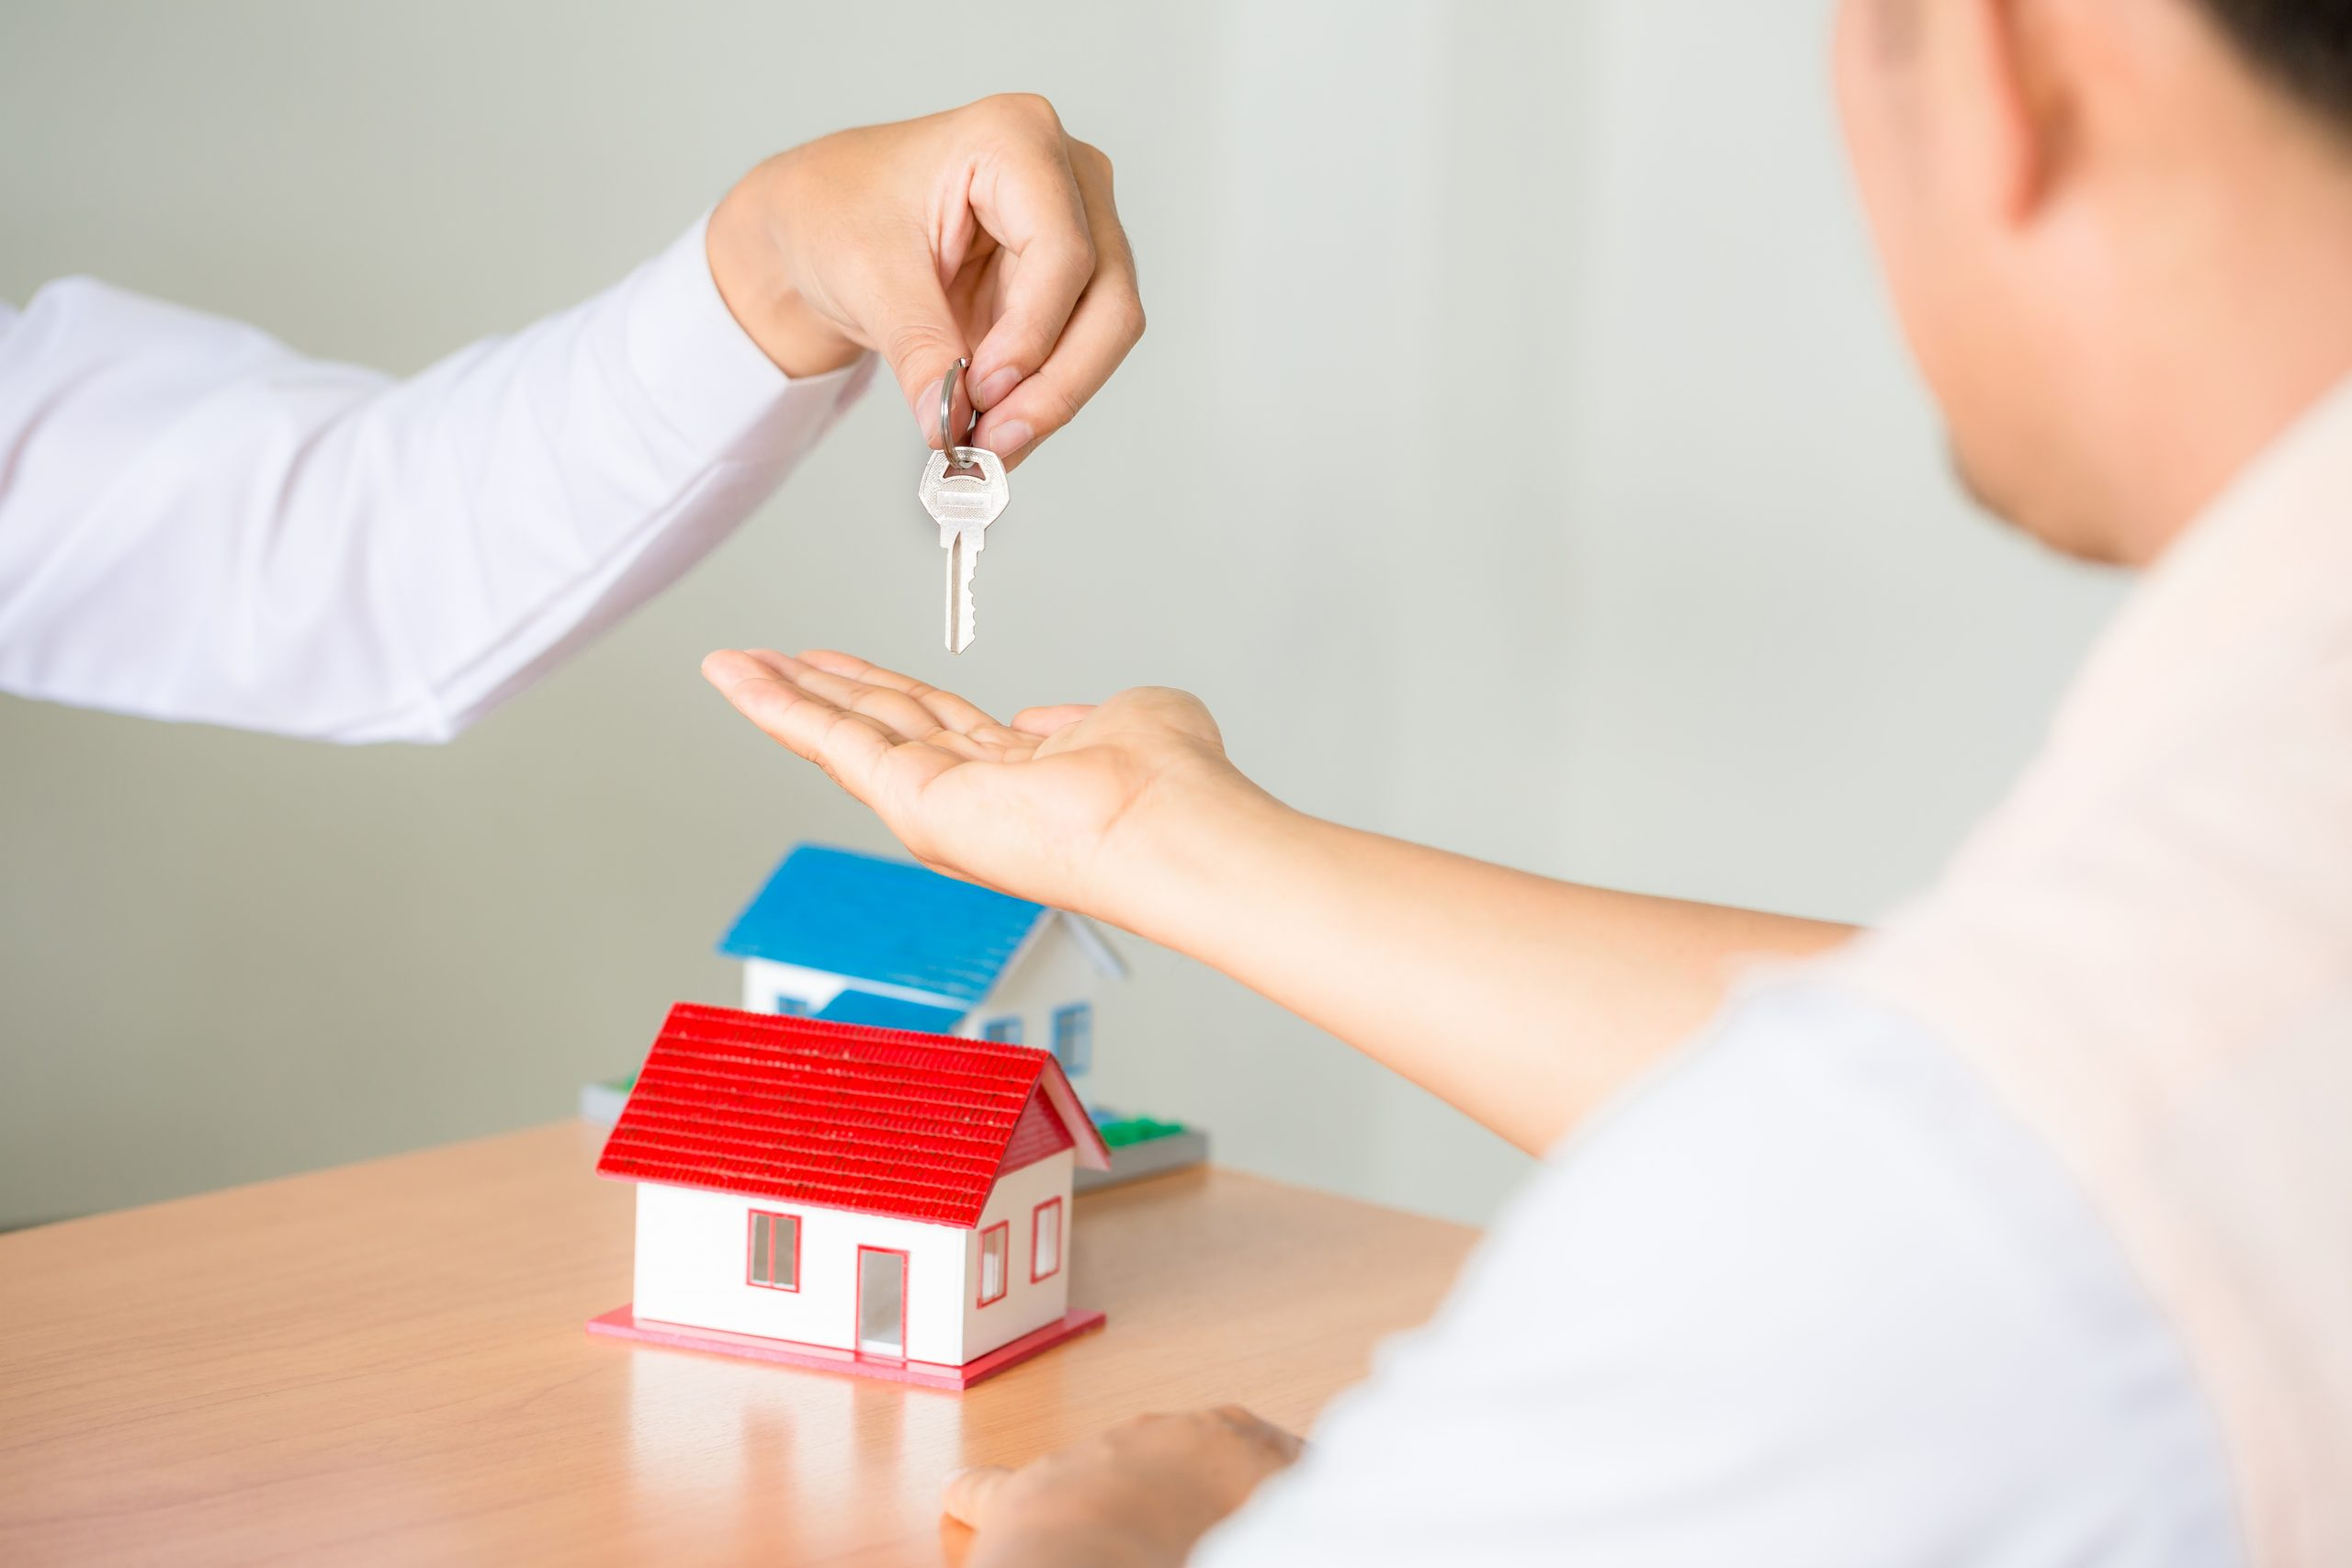 Real estate Sales manager giving keys to customer after signing rental lease contract of sale purchase agreement, concerning mortgage loan offer for and house insurance.